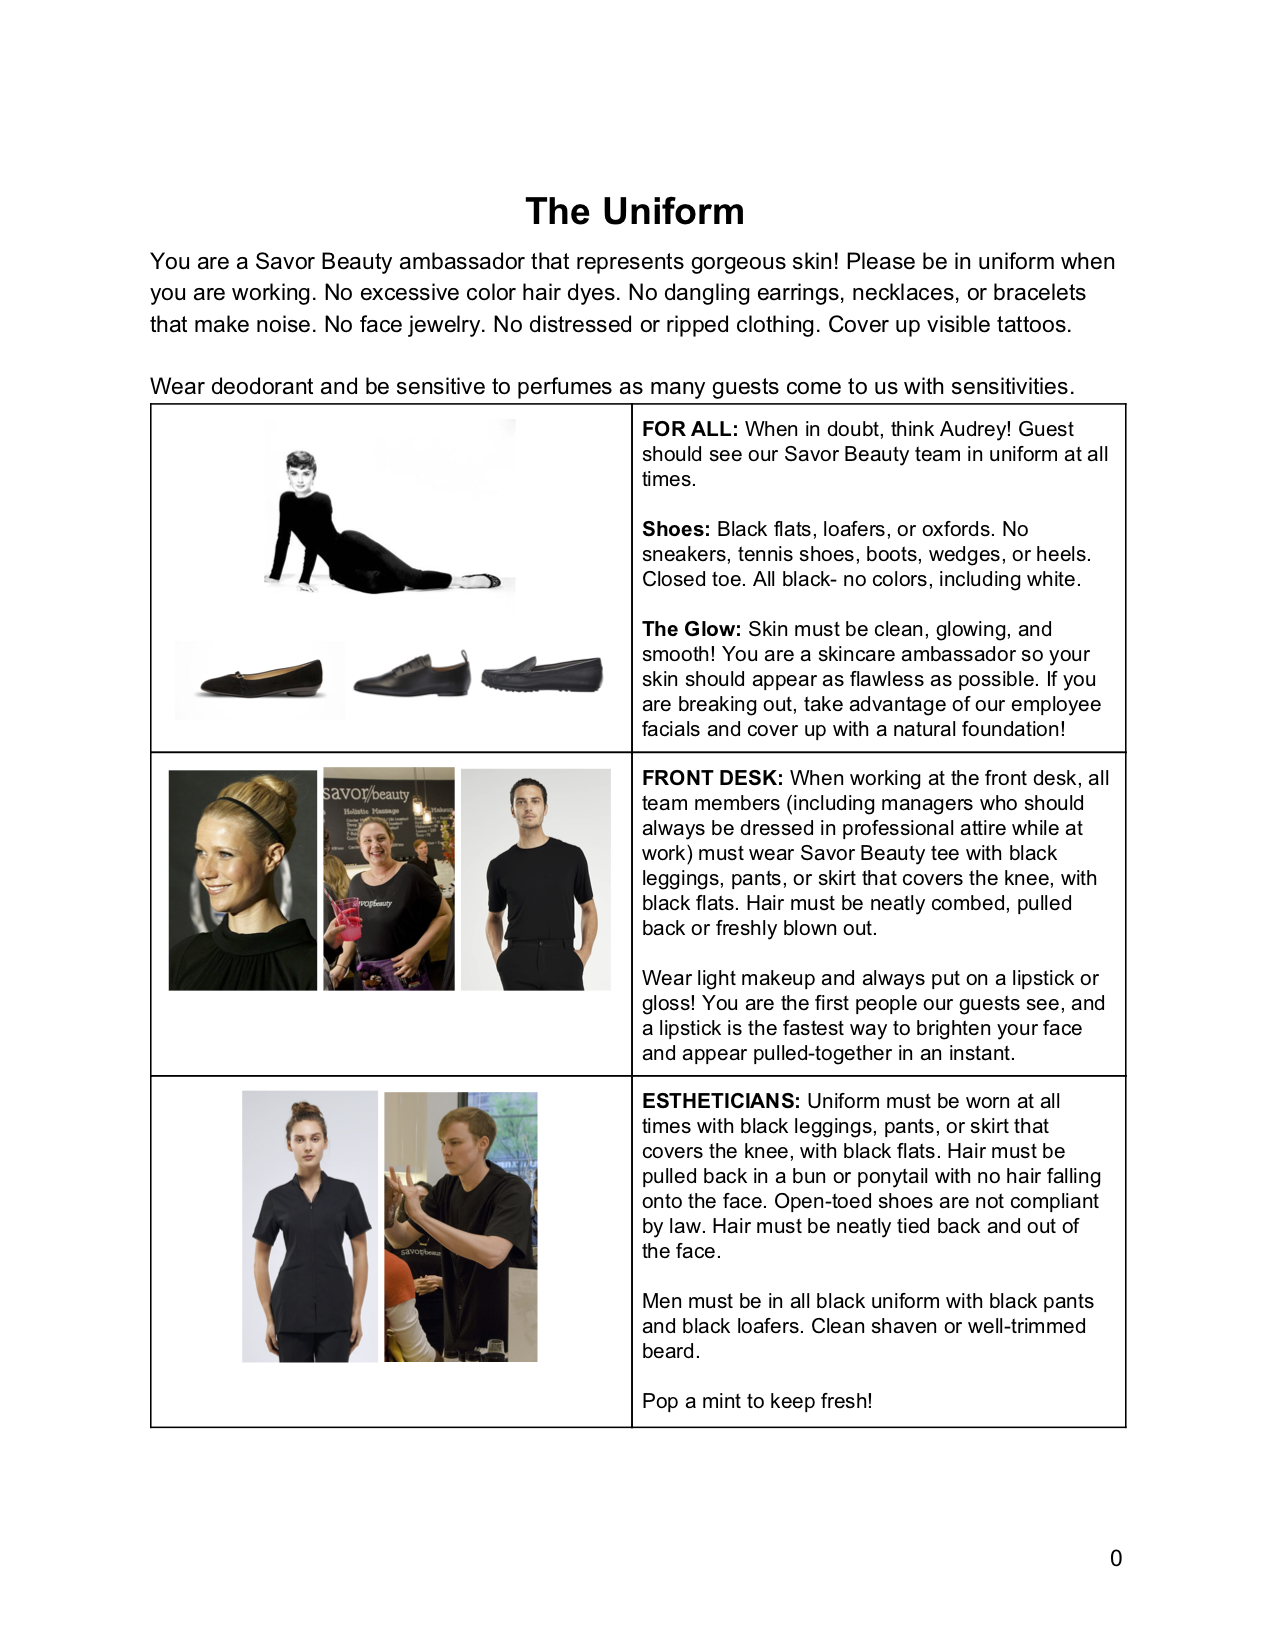 updated uniform guidelines jan 2019 (1).png